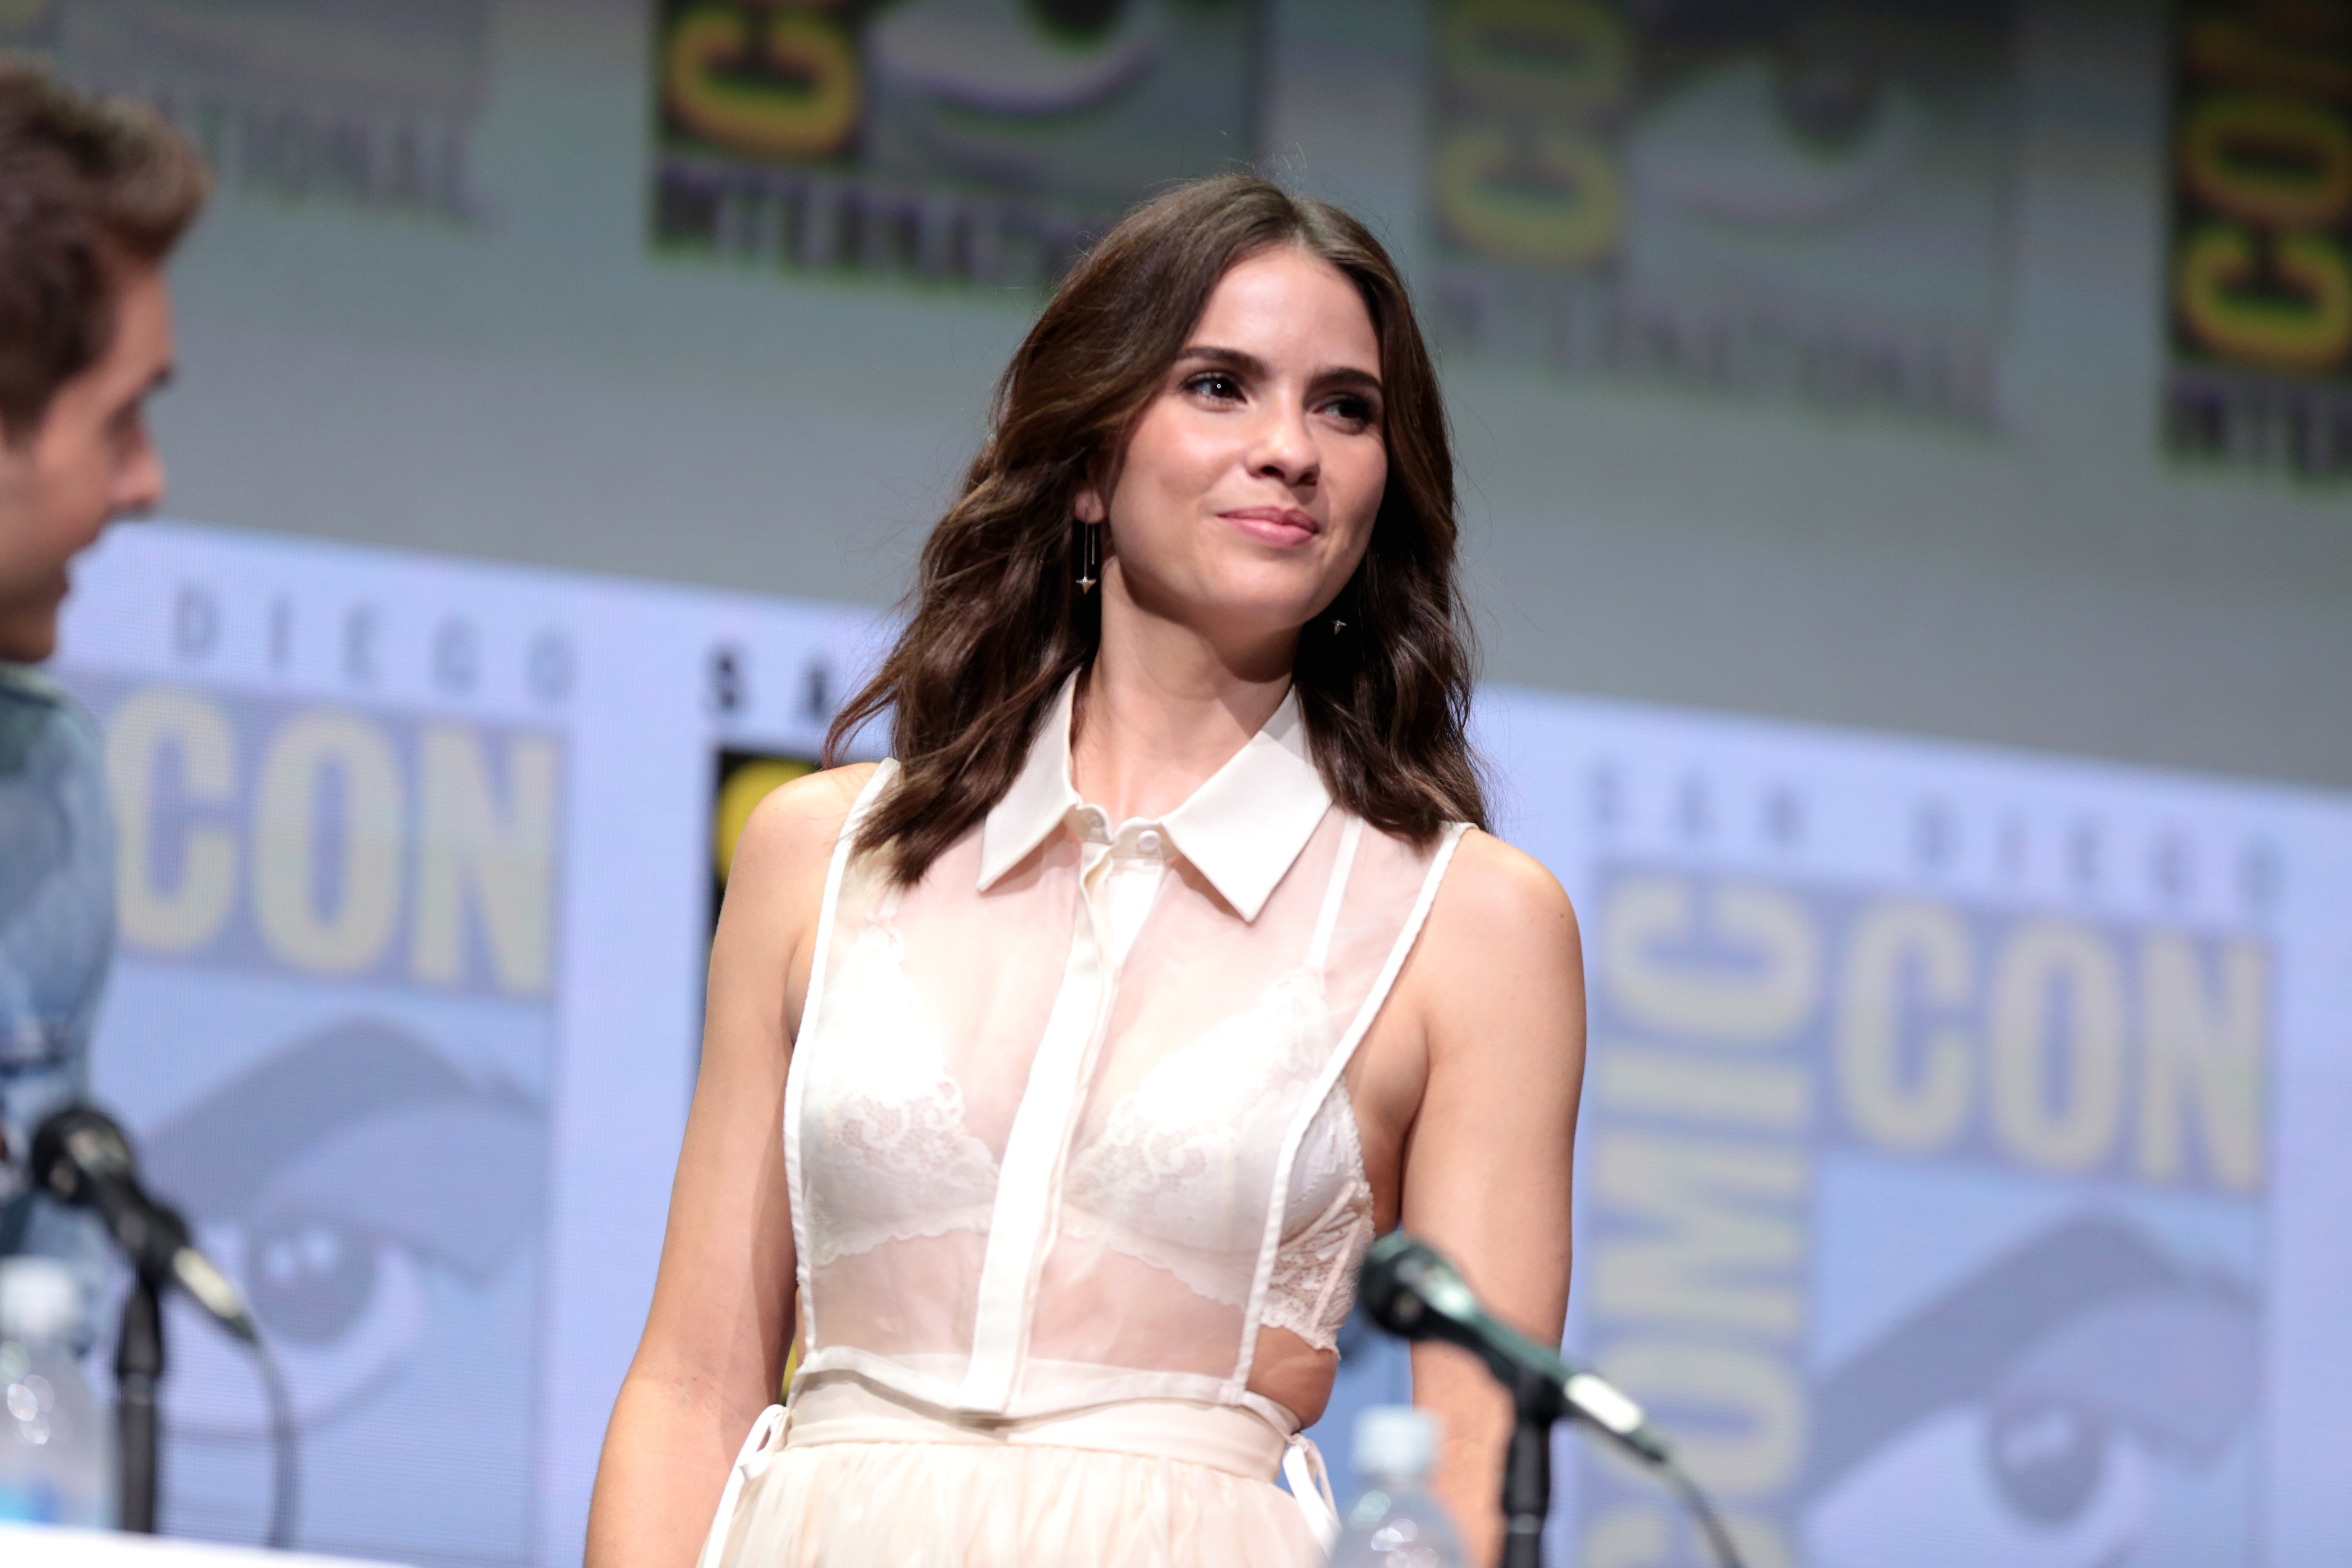 Forum on this topic: Bette Midler, shelley-hennig/